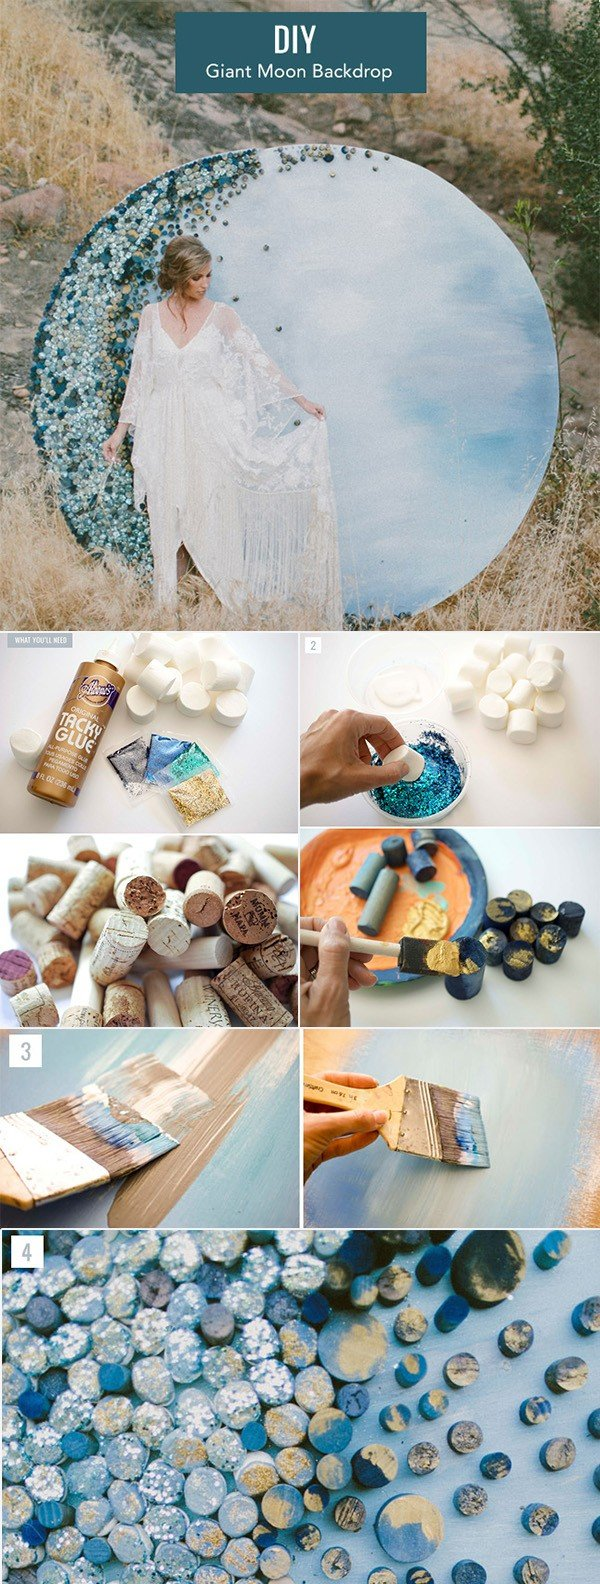 10 Perfect DIY Wedding Ideas on a Budget  Oh Best Day Ever